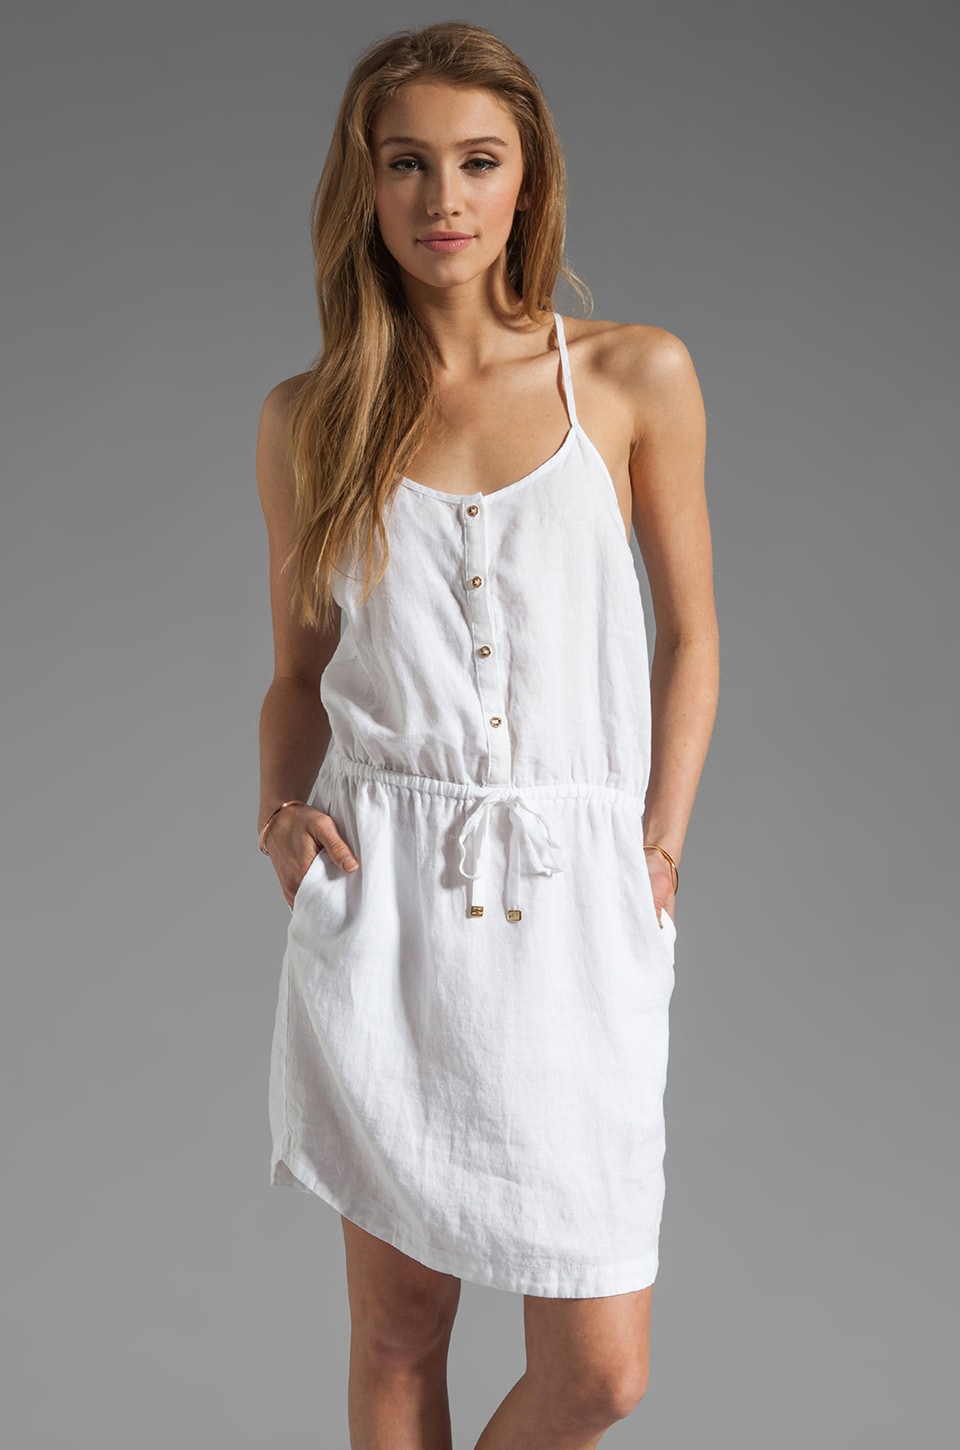 Juicy Couture Beach Linen Dress in White